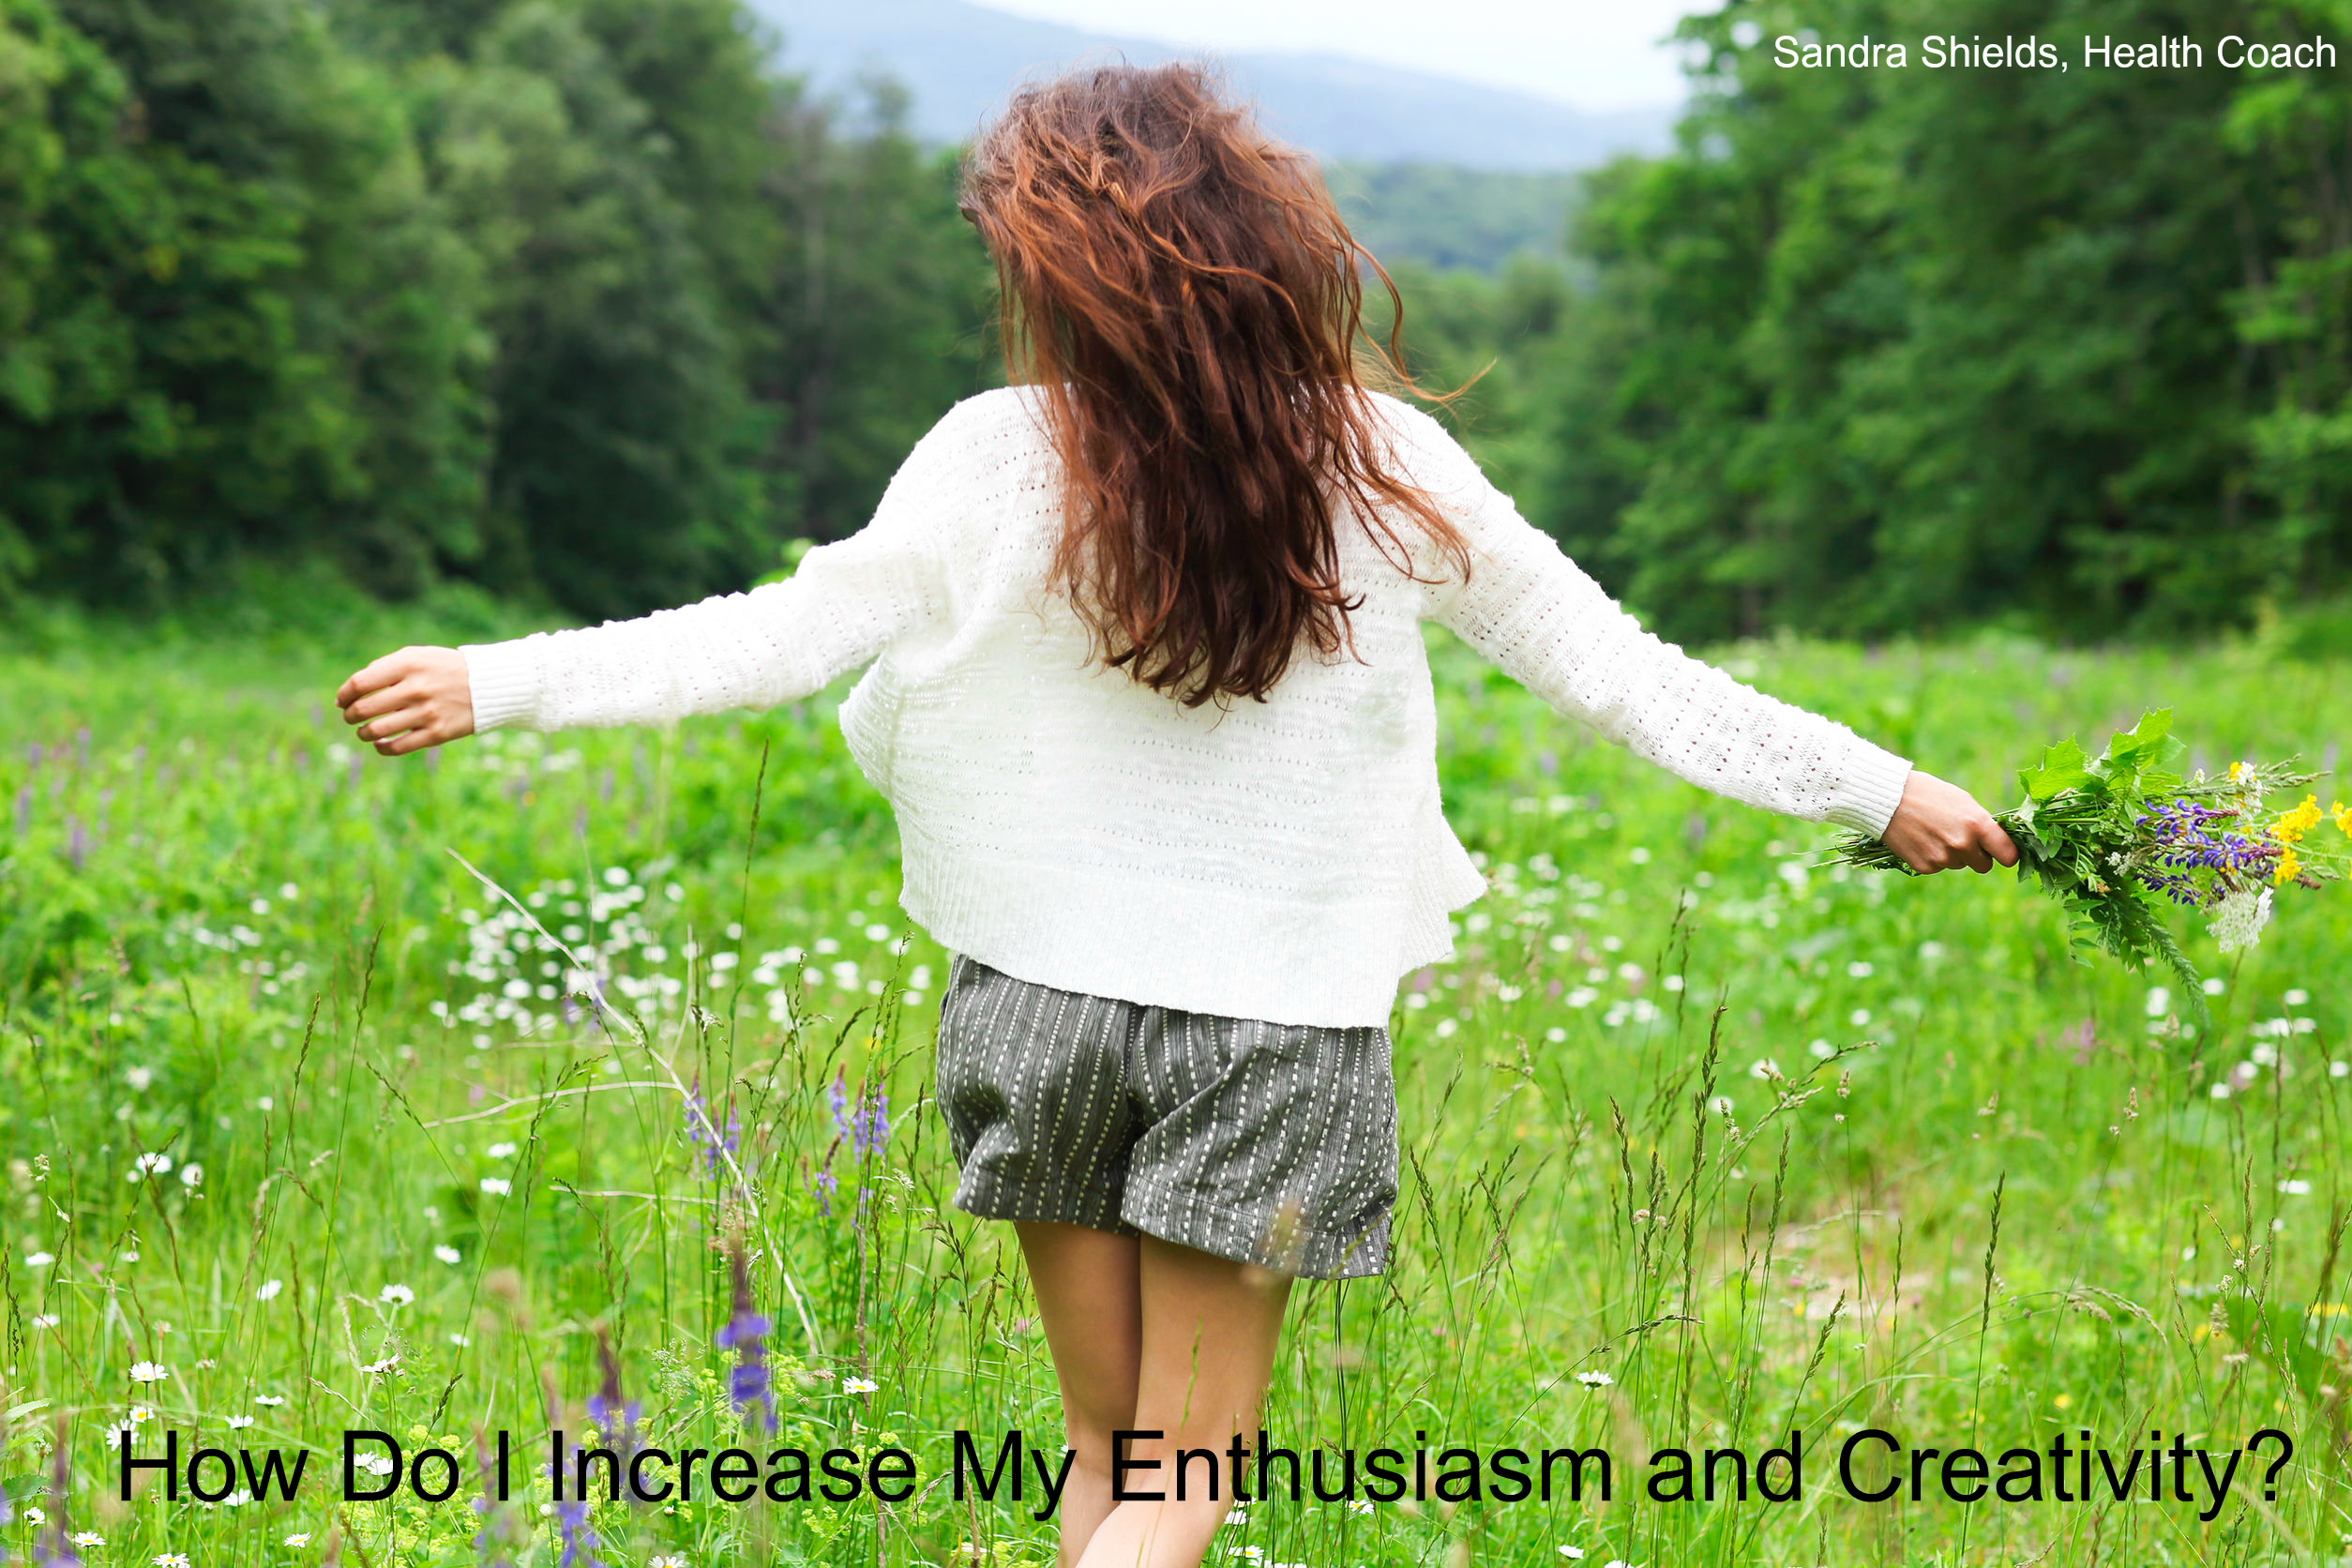 Enthusiasm and Creativity